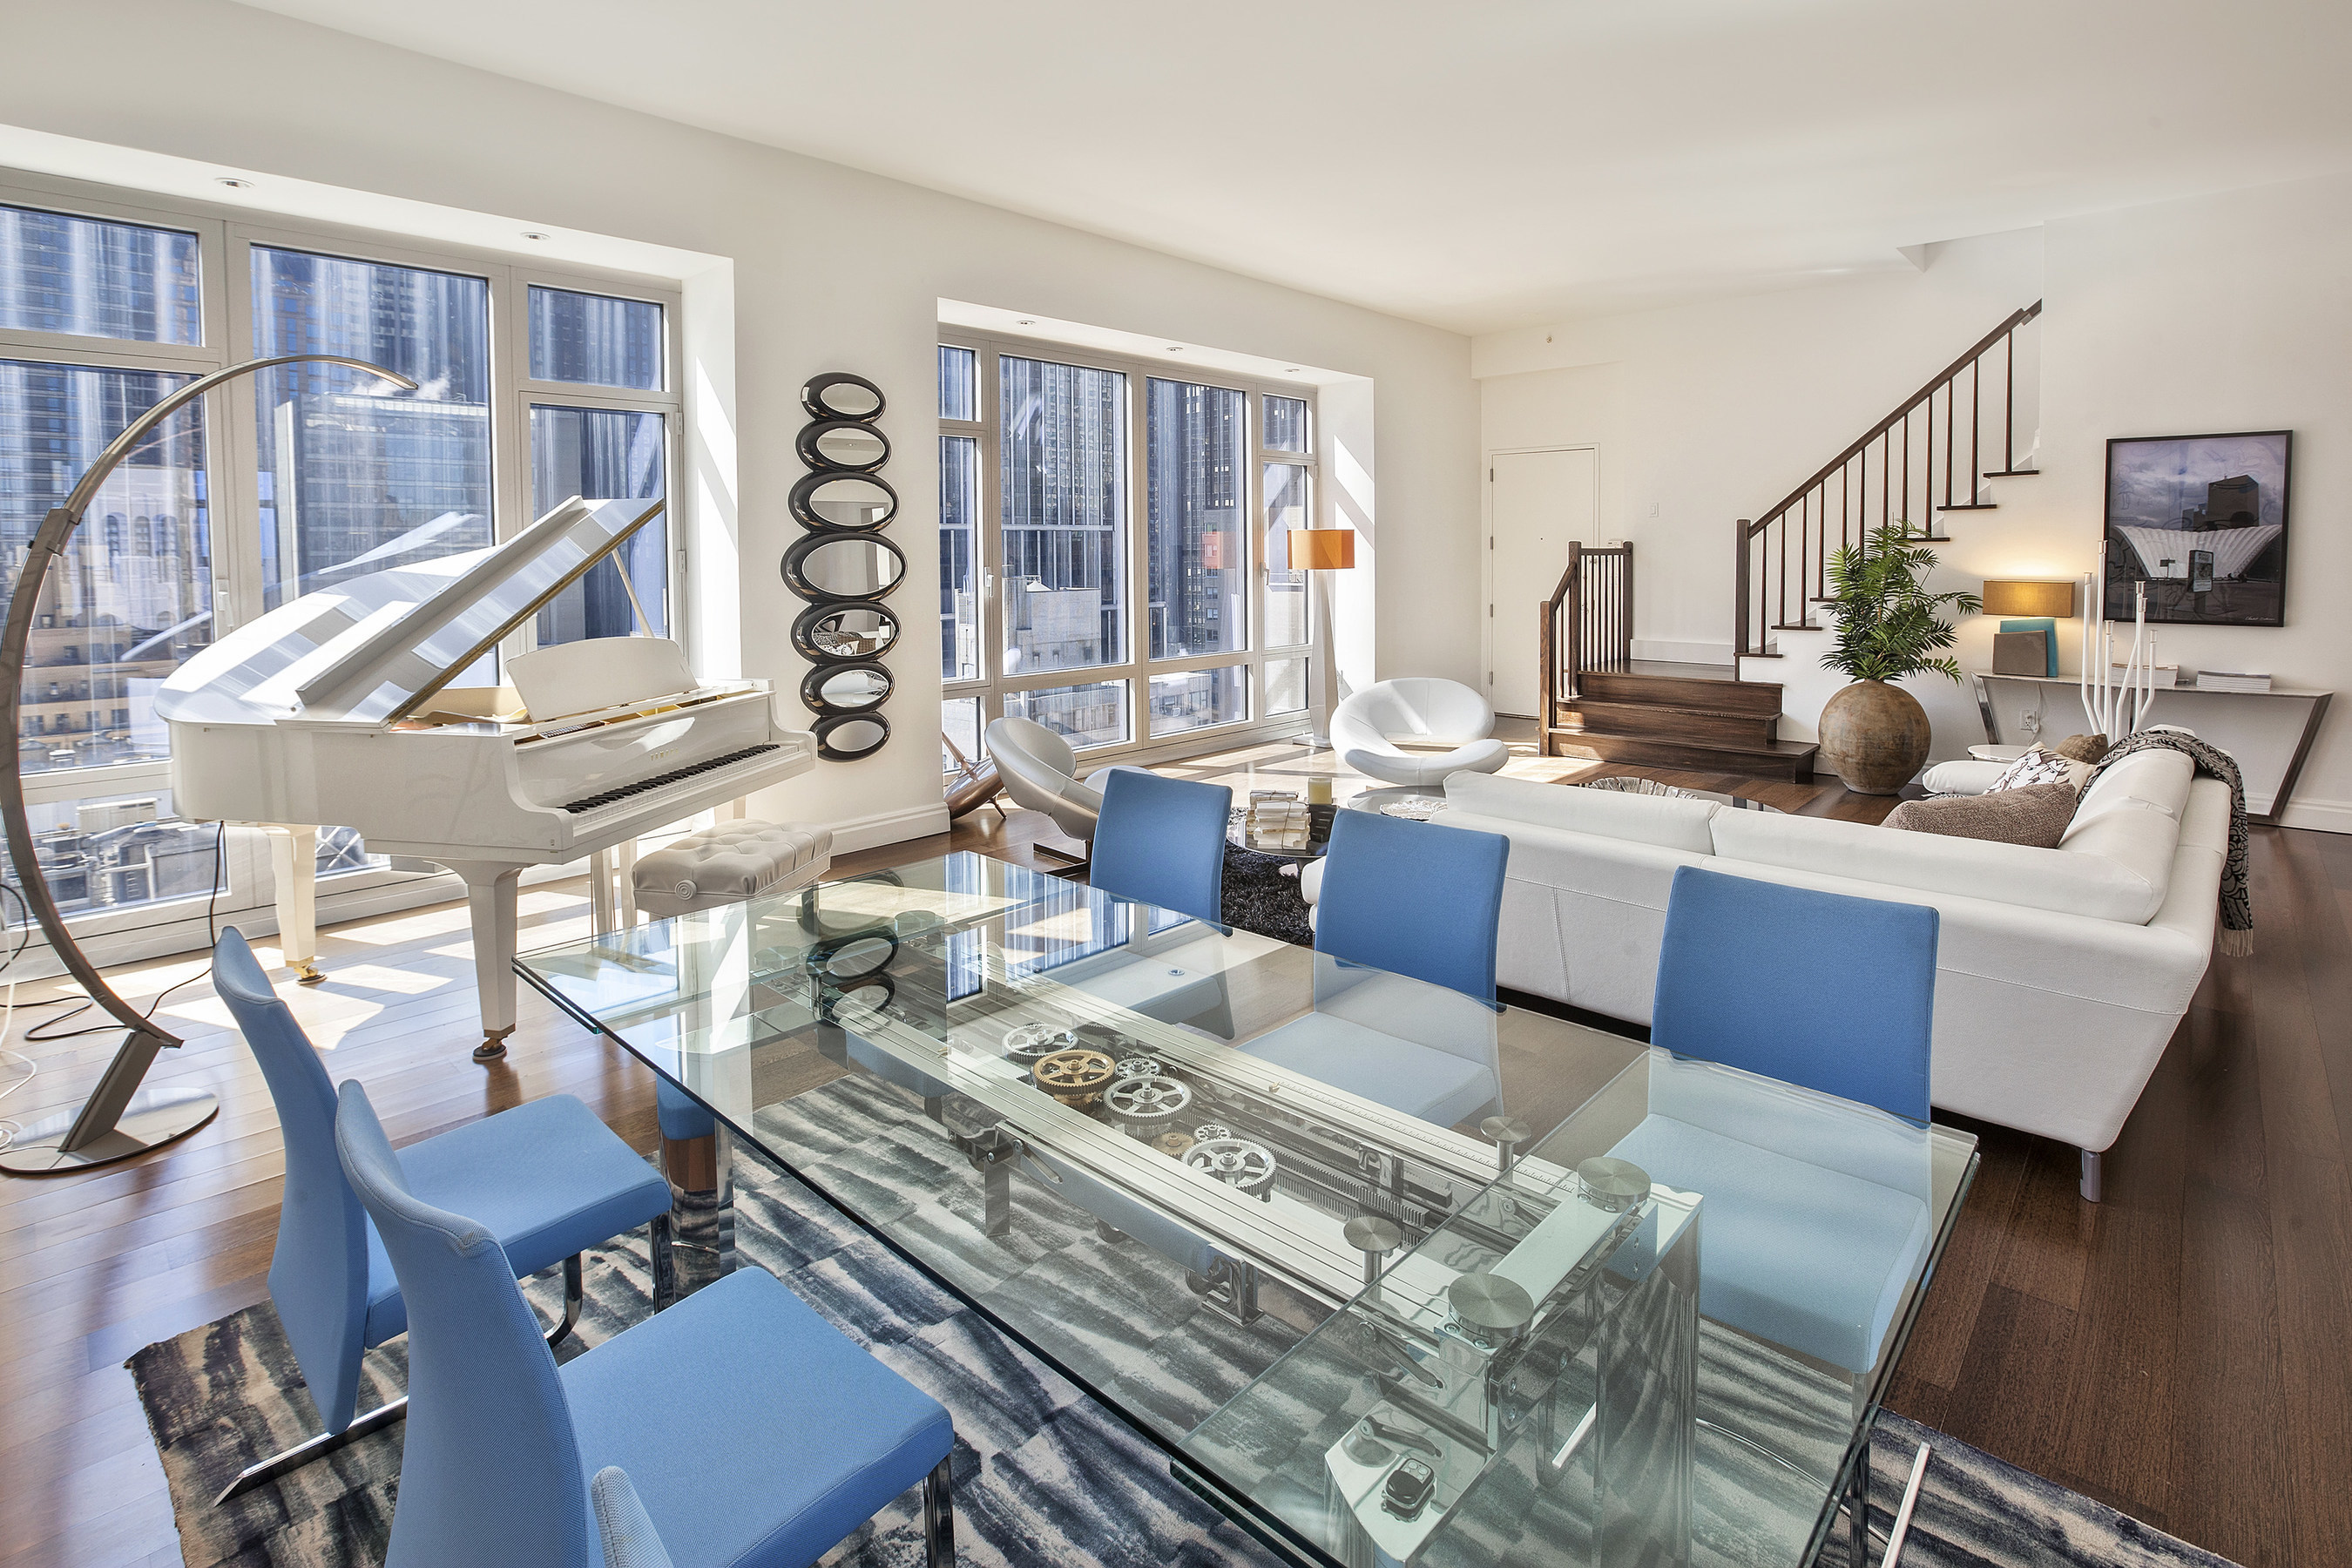 New York Residence and Roche Bobois Furnish Penthouse in Midtown Manhattan